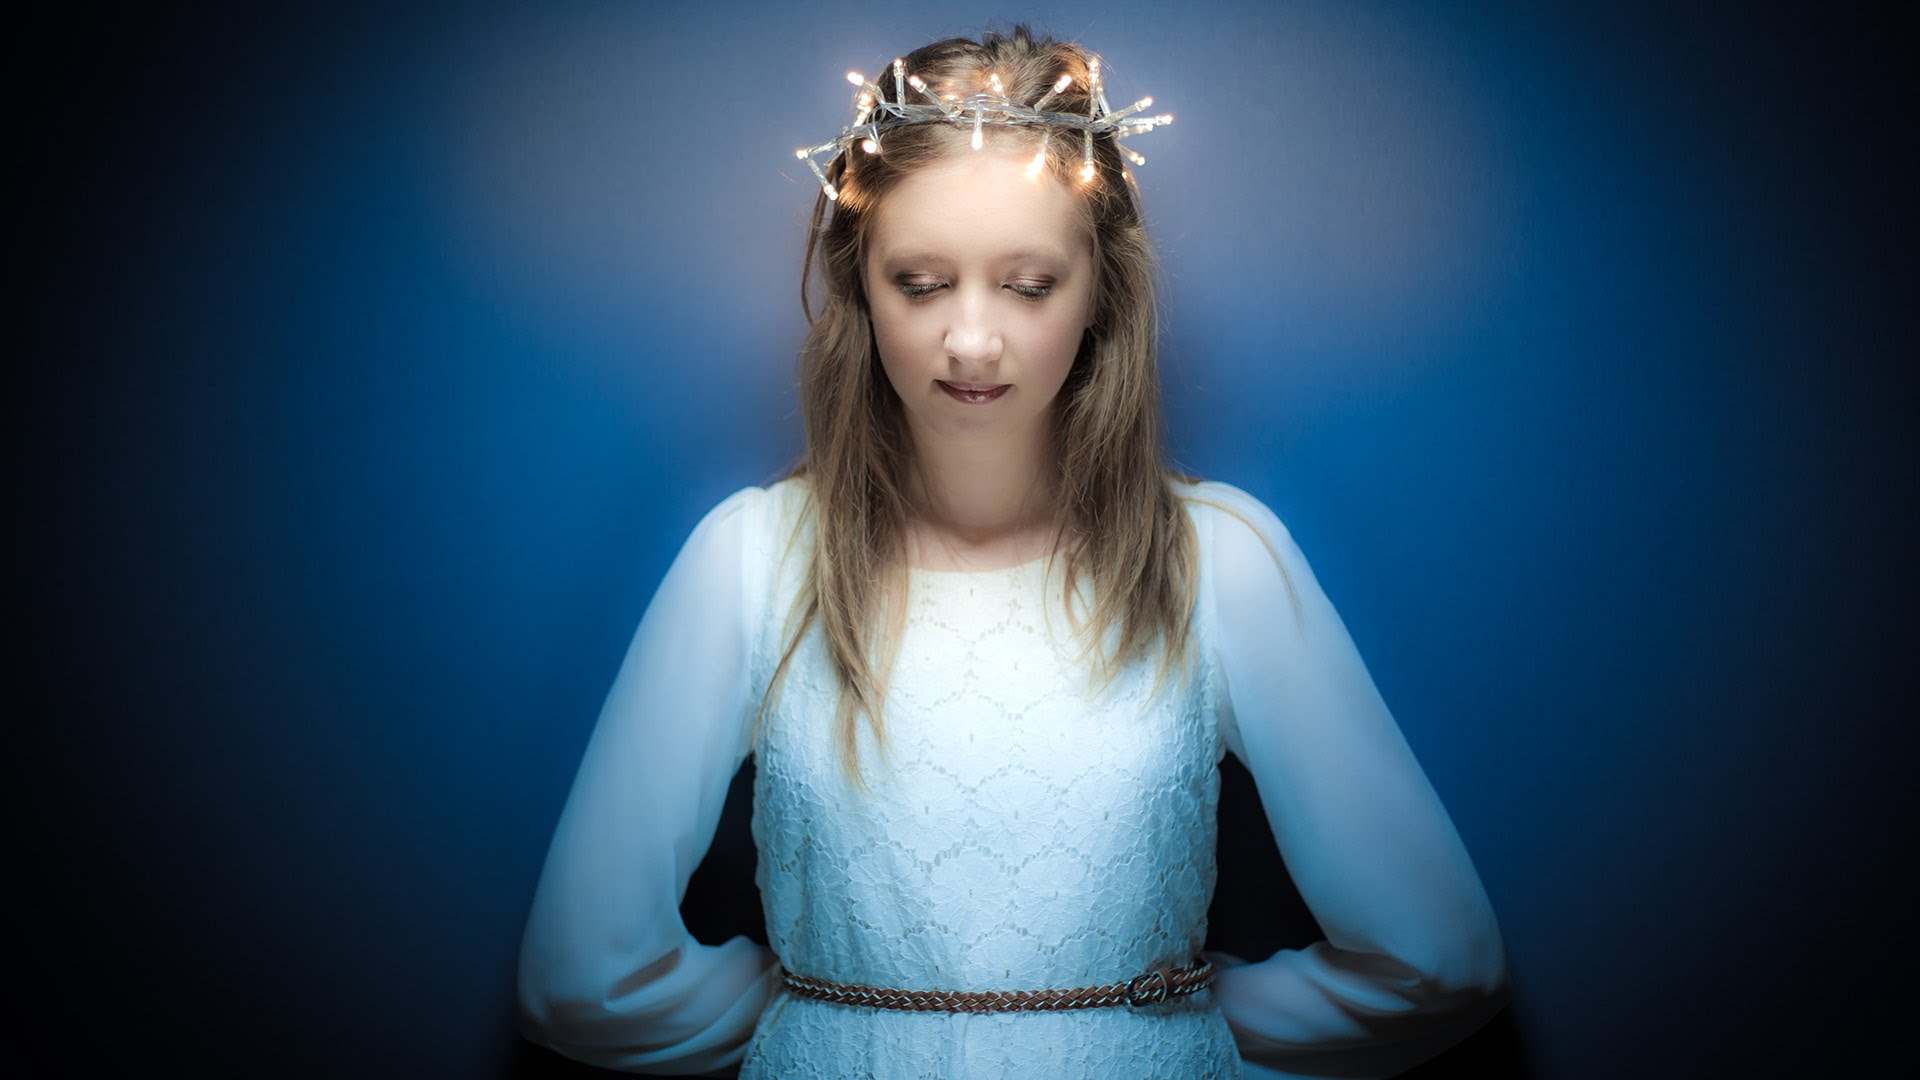 How To Balance Flash With Fairy Lights For Portrait